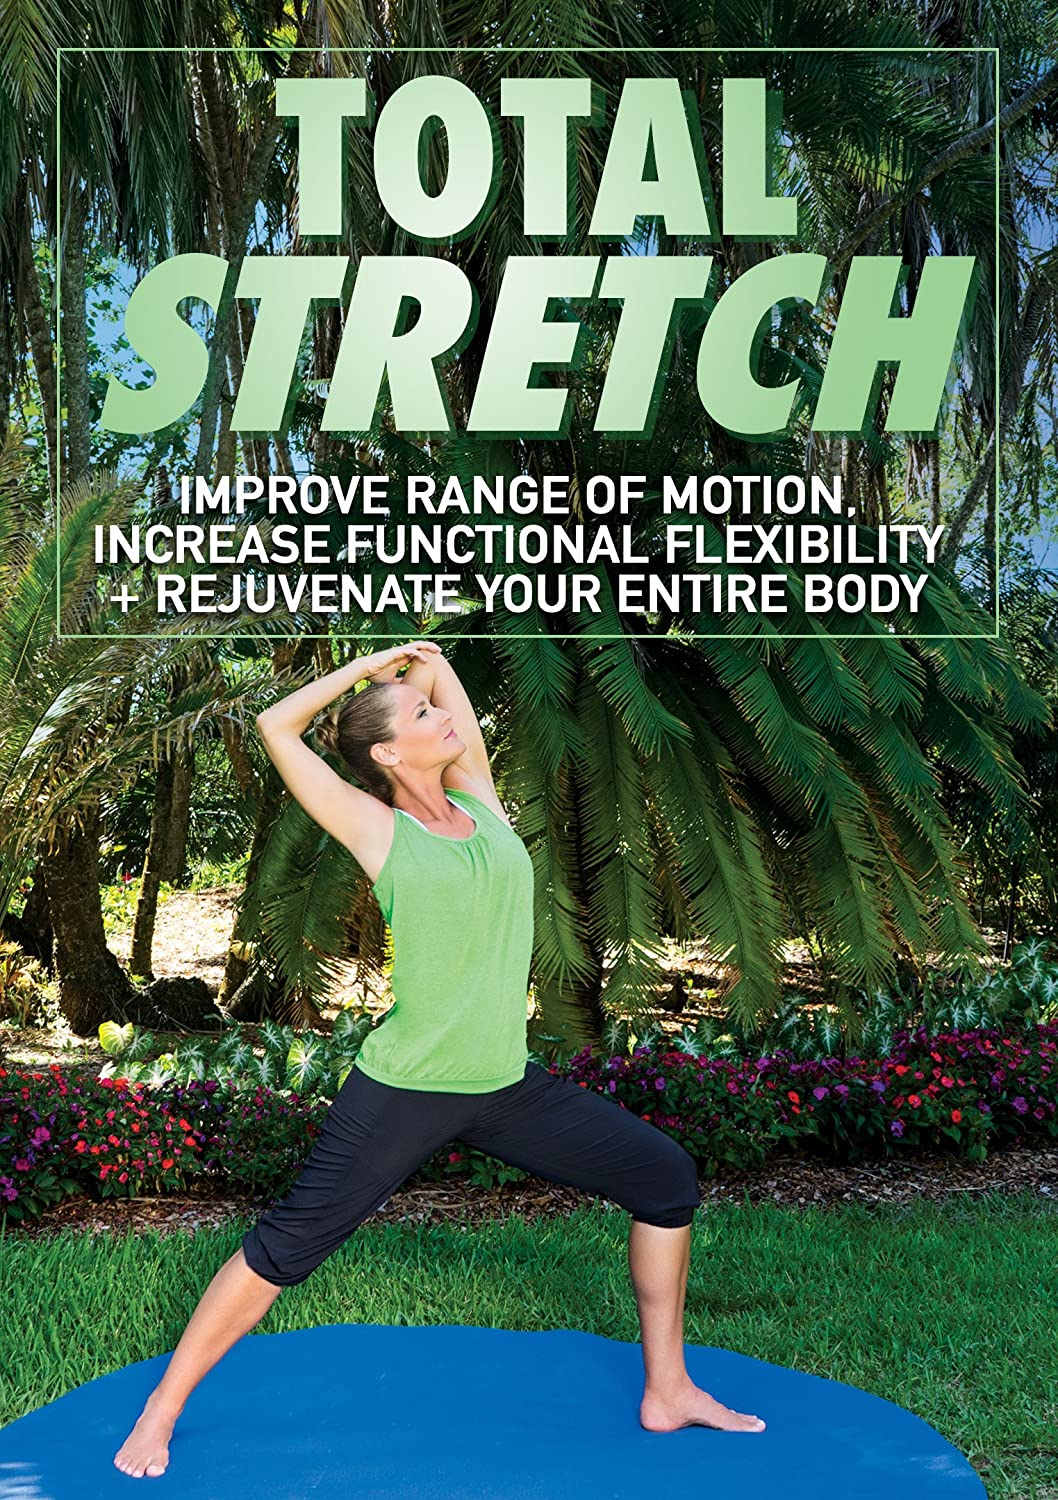 Total Stretch Improve Range of Motion, Increase Functional Flexibility + Rejuvenate Your Entire Body with Jessica Smith